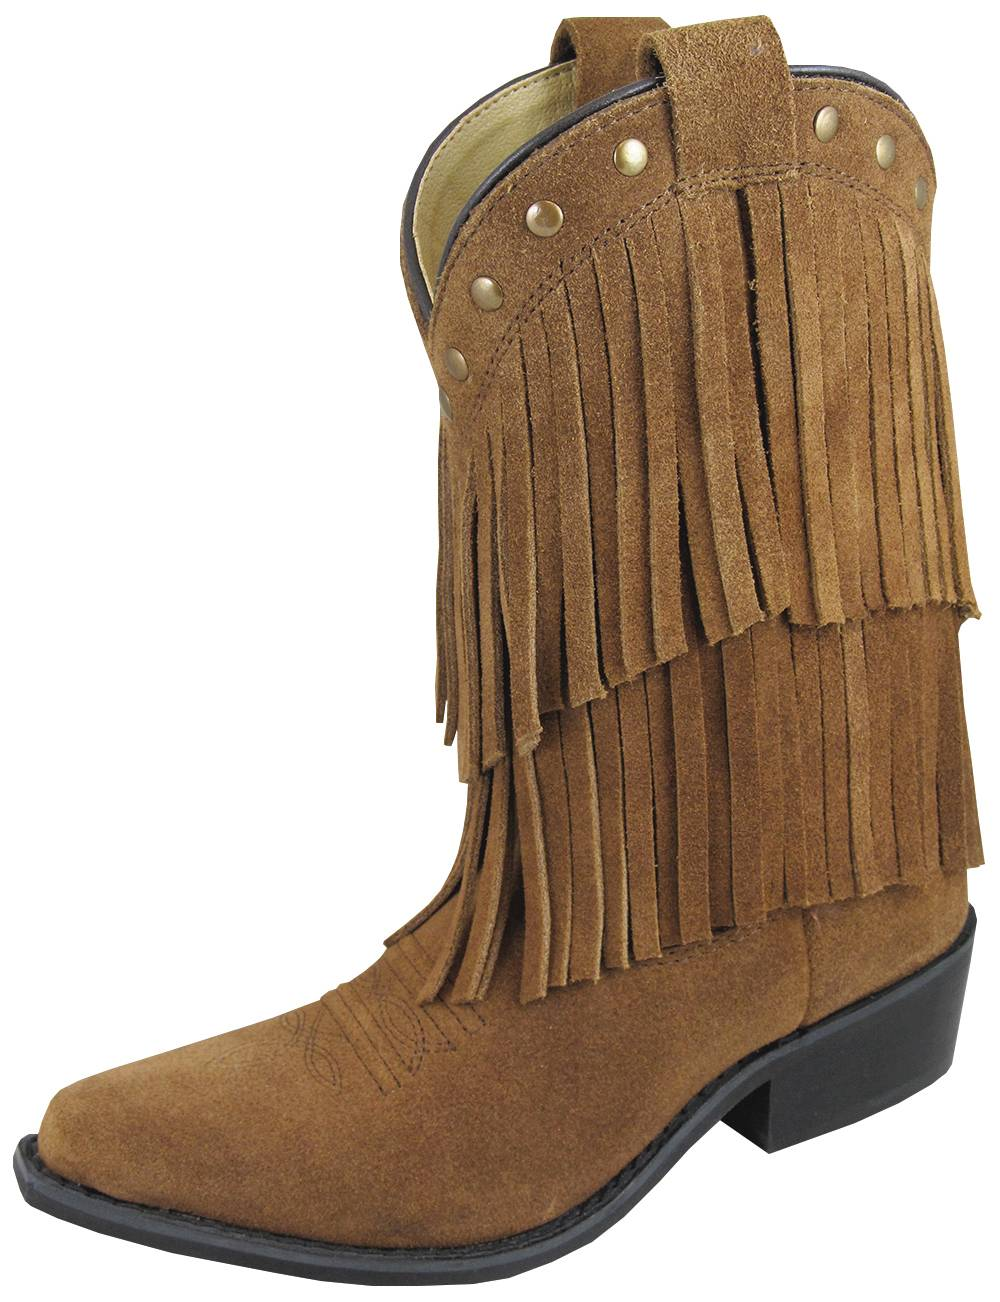 Smoky Mountain Youth Wisteria Double Fringe Leather Boots - Brown